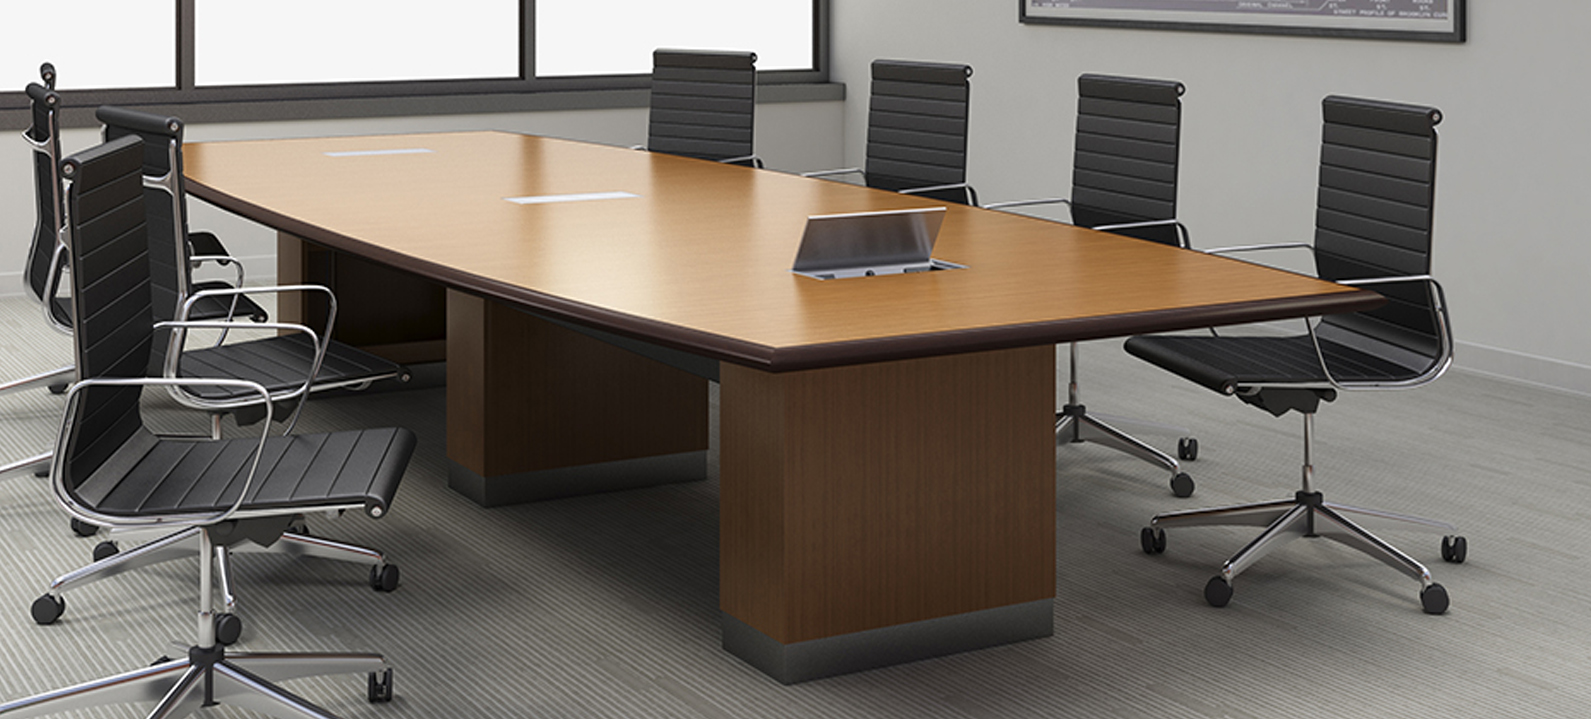 Which Table Is Better For Your Office Round Or Rectangular